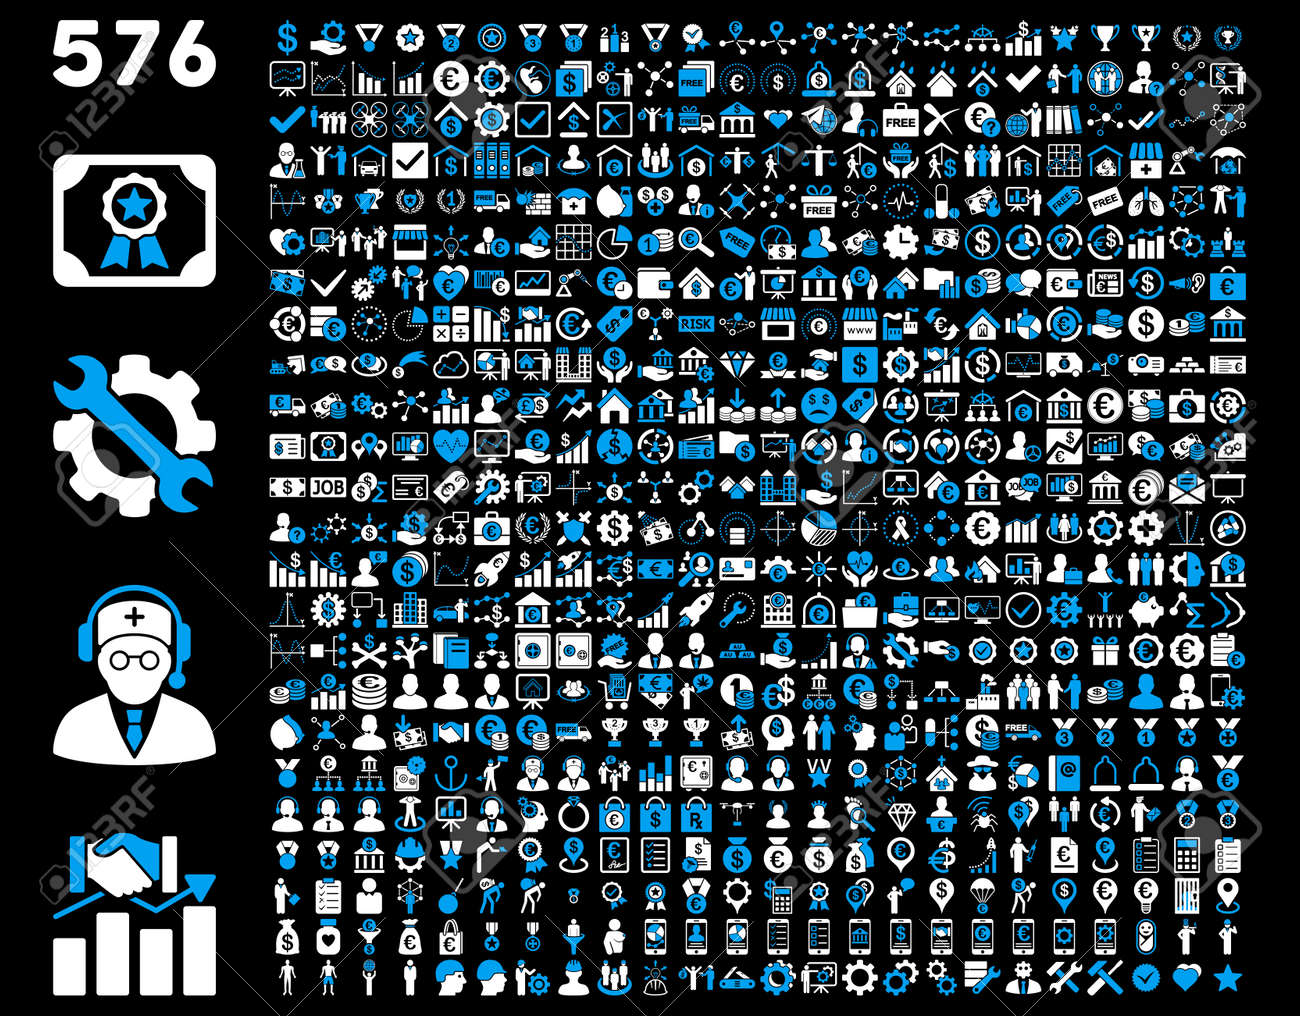 Toolbar Icon Set. 576 flat bicolor icons use blue and white colors. Vector images are isolated on a black background. - 42490477